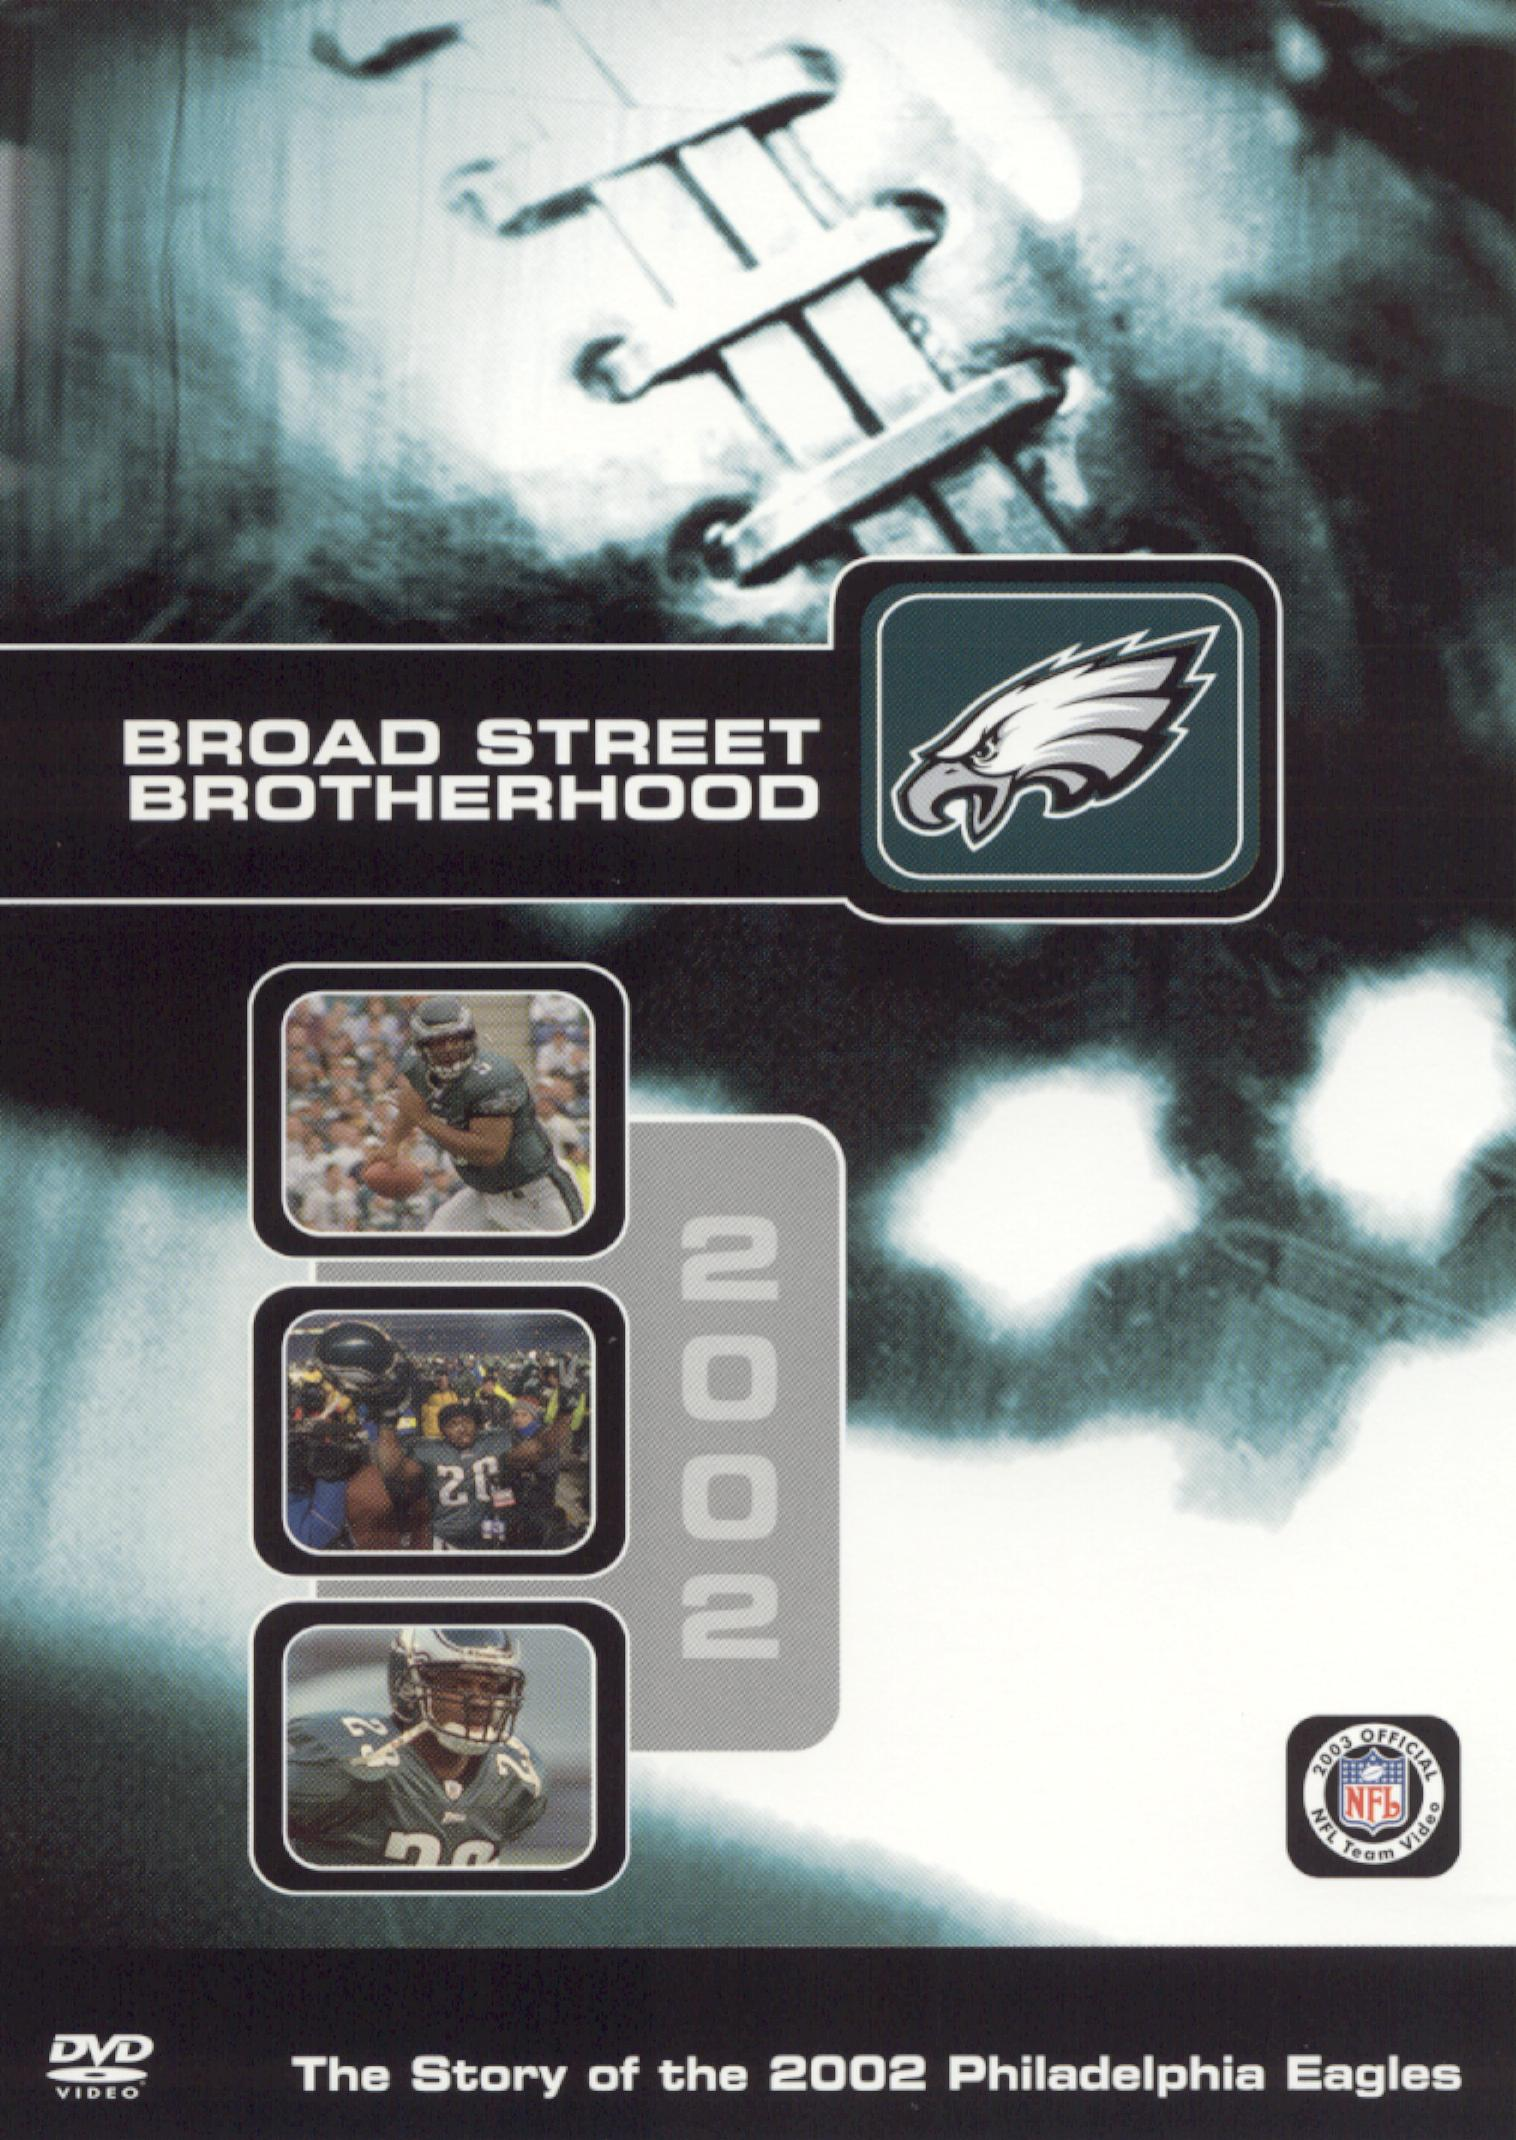 NFL: 2002 Philadelphia Eagles Team Video - Broad Street Brotherhood